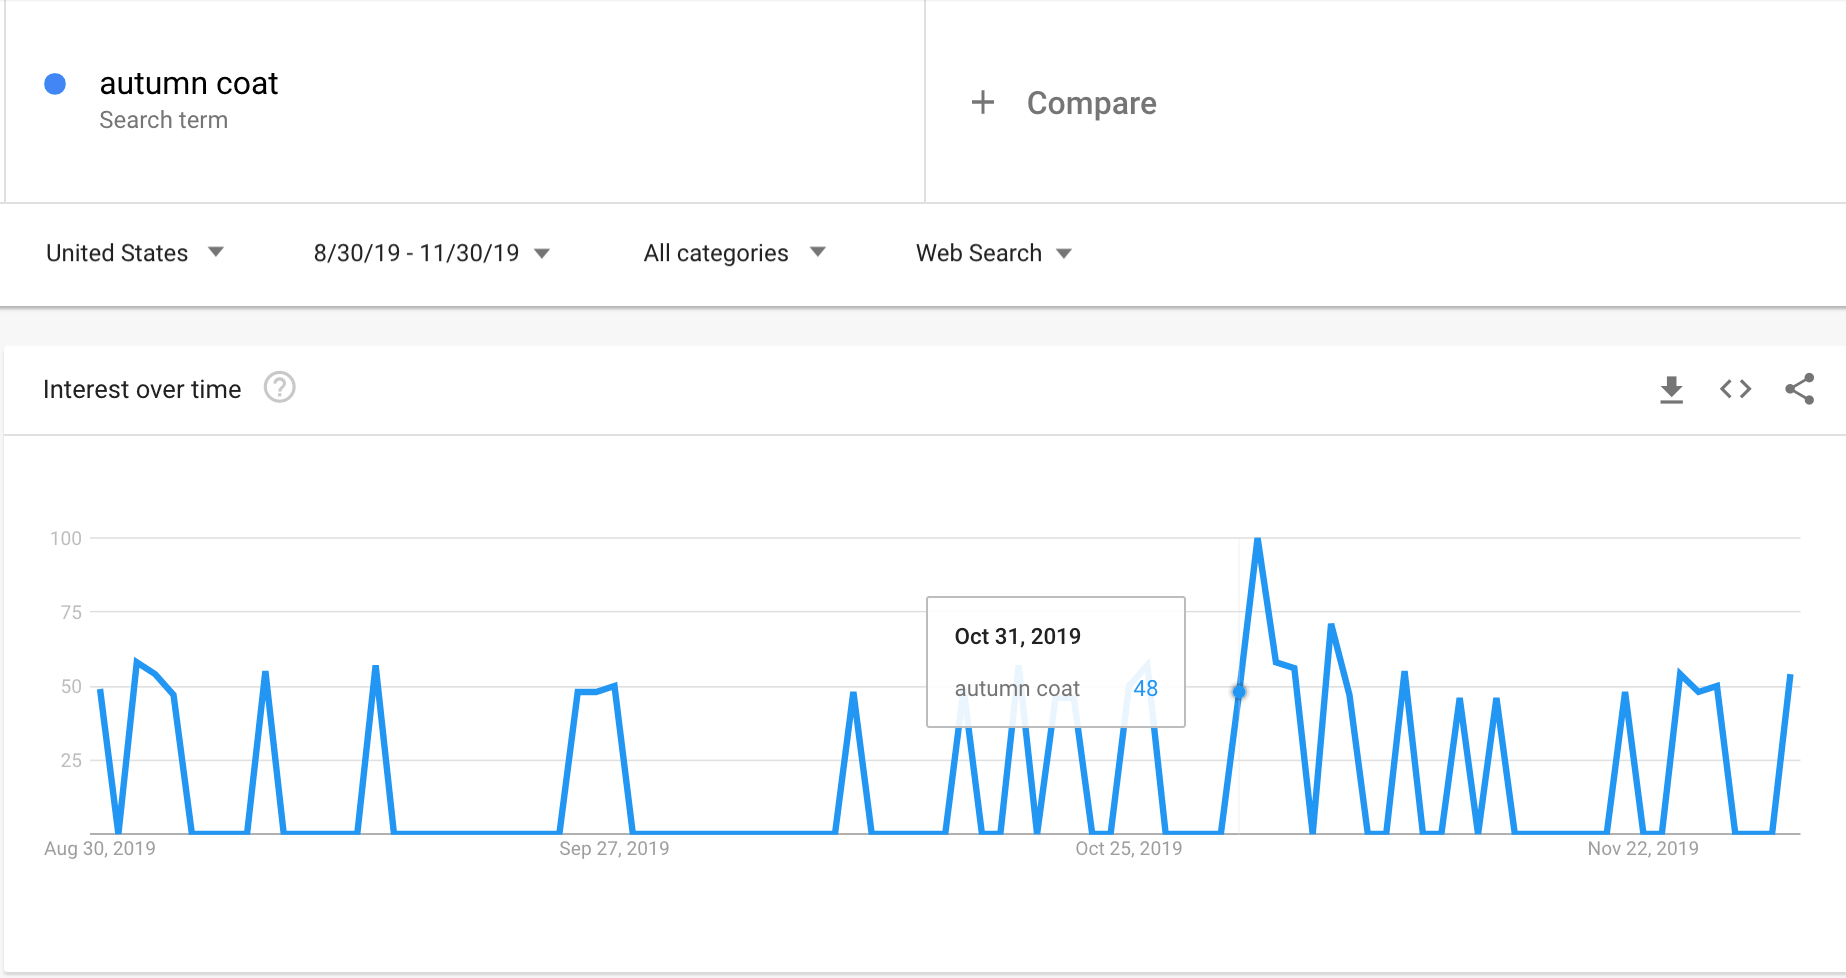 Google Trends graph showing the interest in autumn coats